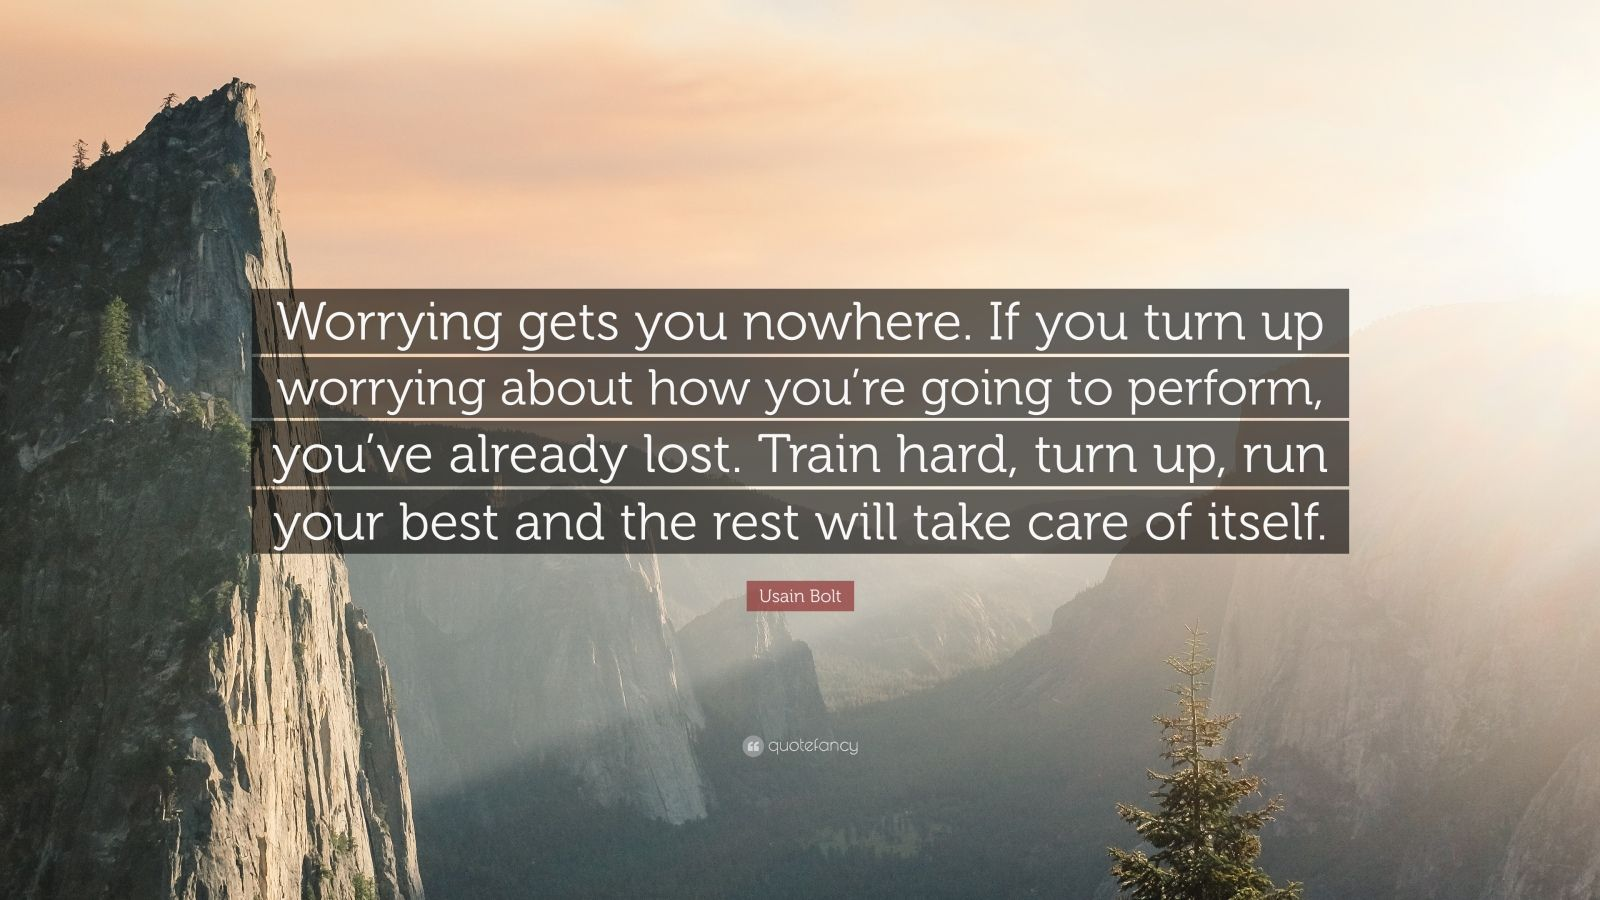 """Usain Bolt Quote: """"Worrying gets you nowhere. If you turn up worrying about how you're going to perform, you've already lost. Train hard, turn up, run your best and the rest will take care of itself."""""""